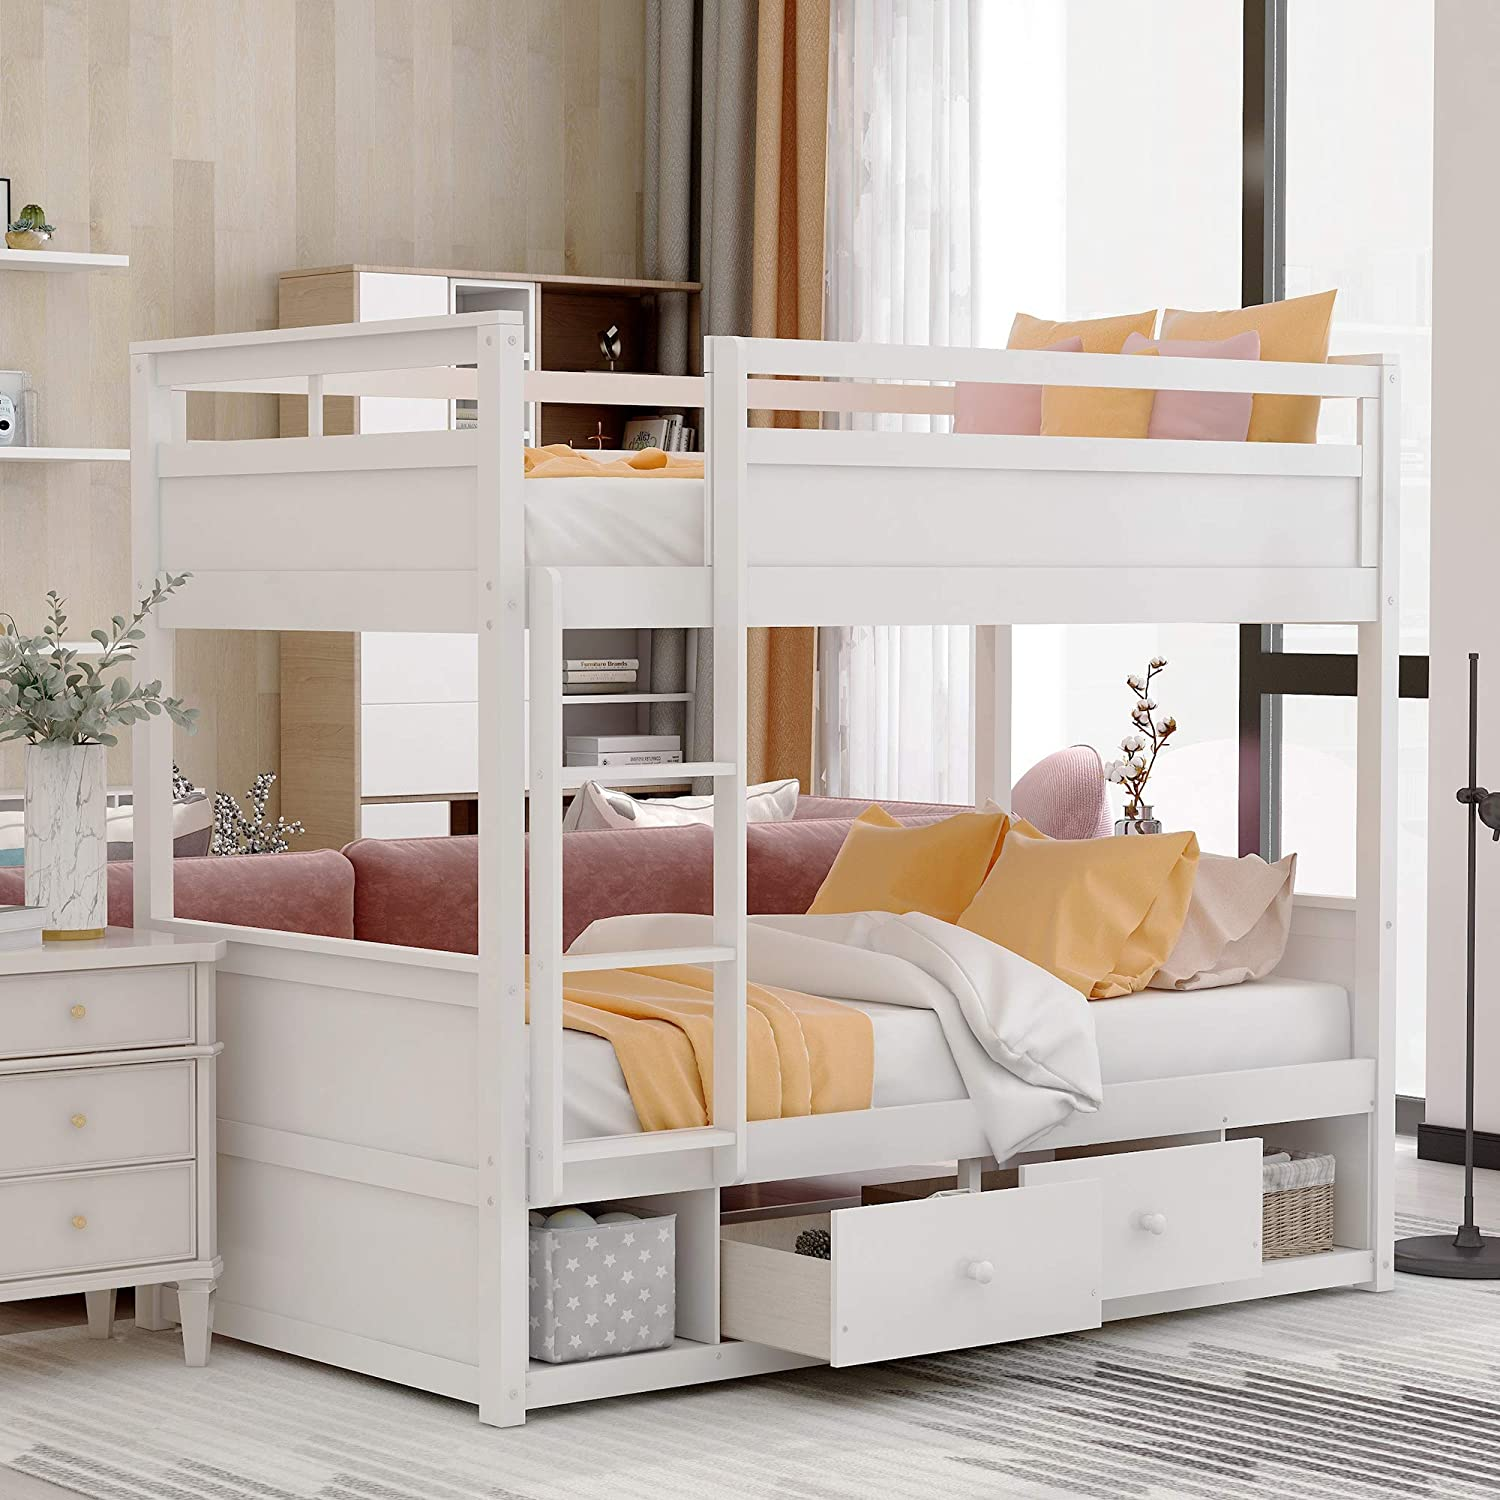 Amazon Com Merax Twin Over Twin Bunk Bed Wood Bunk Bed With Two Drawers Two Storage For Kids Teens No Box Spring Needed White Twin Over Twin Kitchen Dining